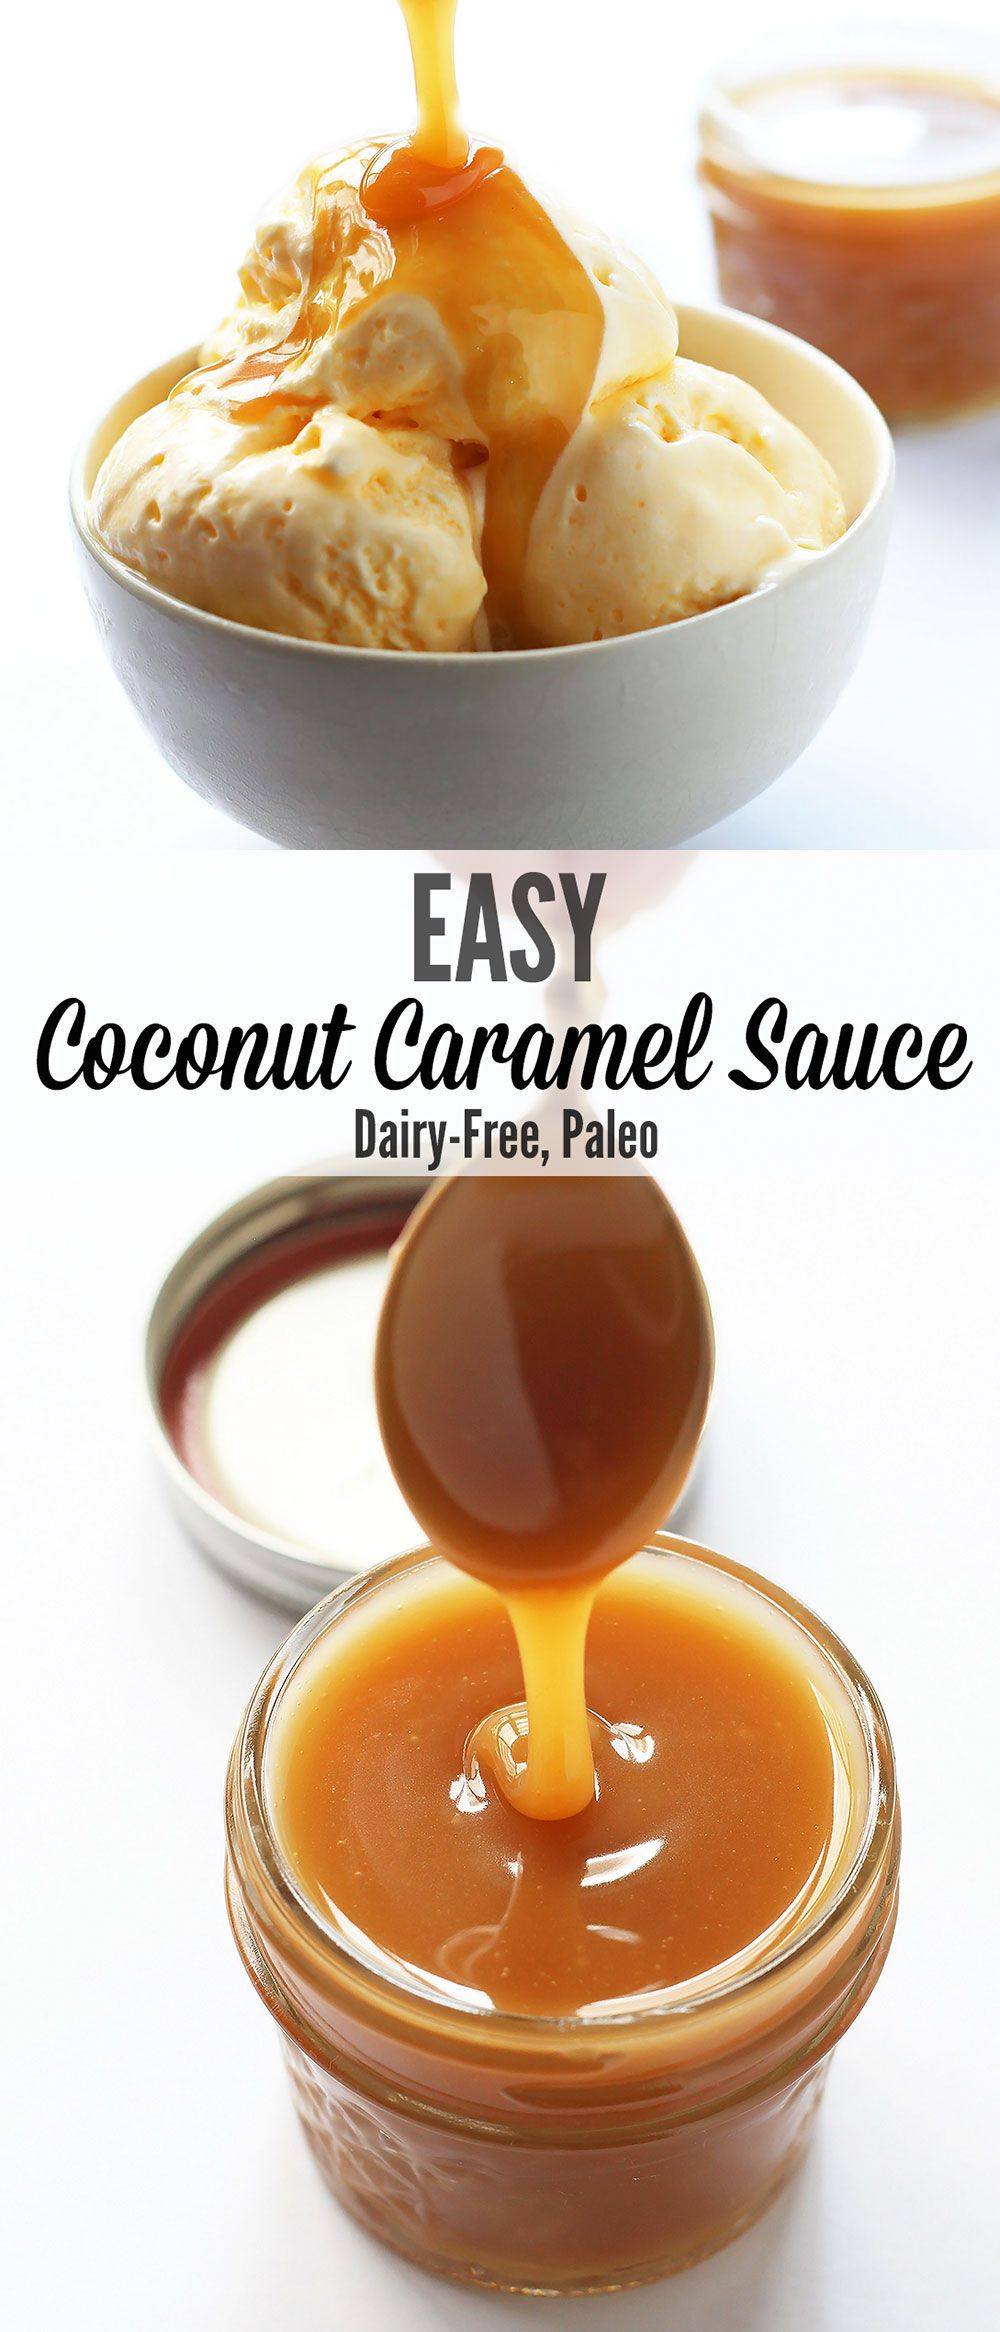 Learn How To Make This Amazing And Easy Caramel Sauce It Is Made With Coconut Sugar Coconut Cream So It Is Dairy Fre Vegan Caramel Sweet Sauce Free Desserts